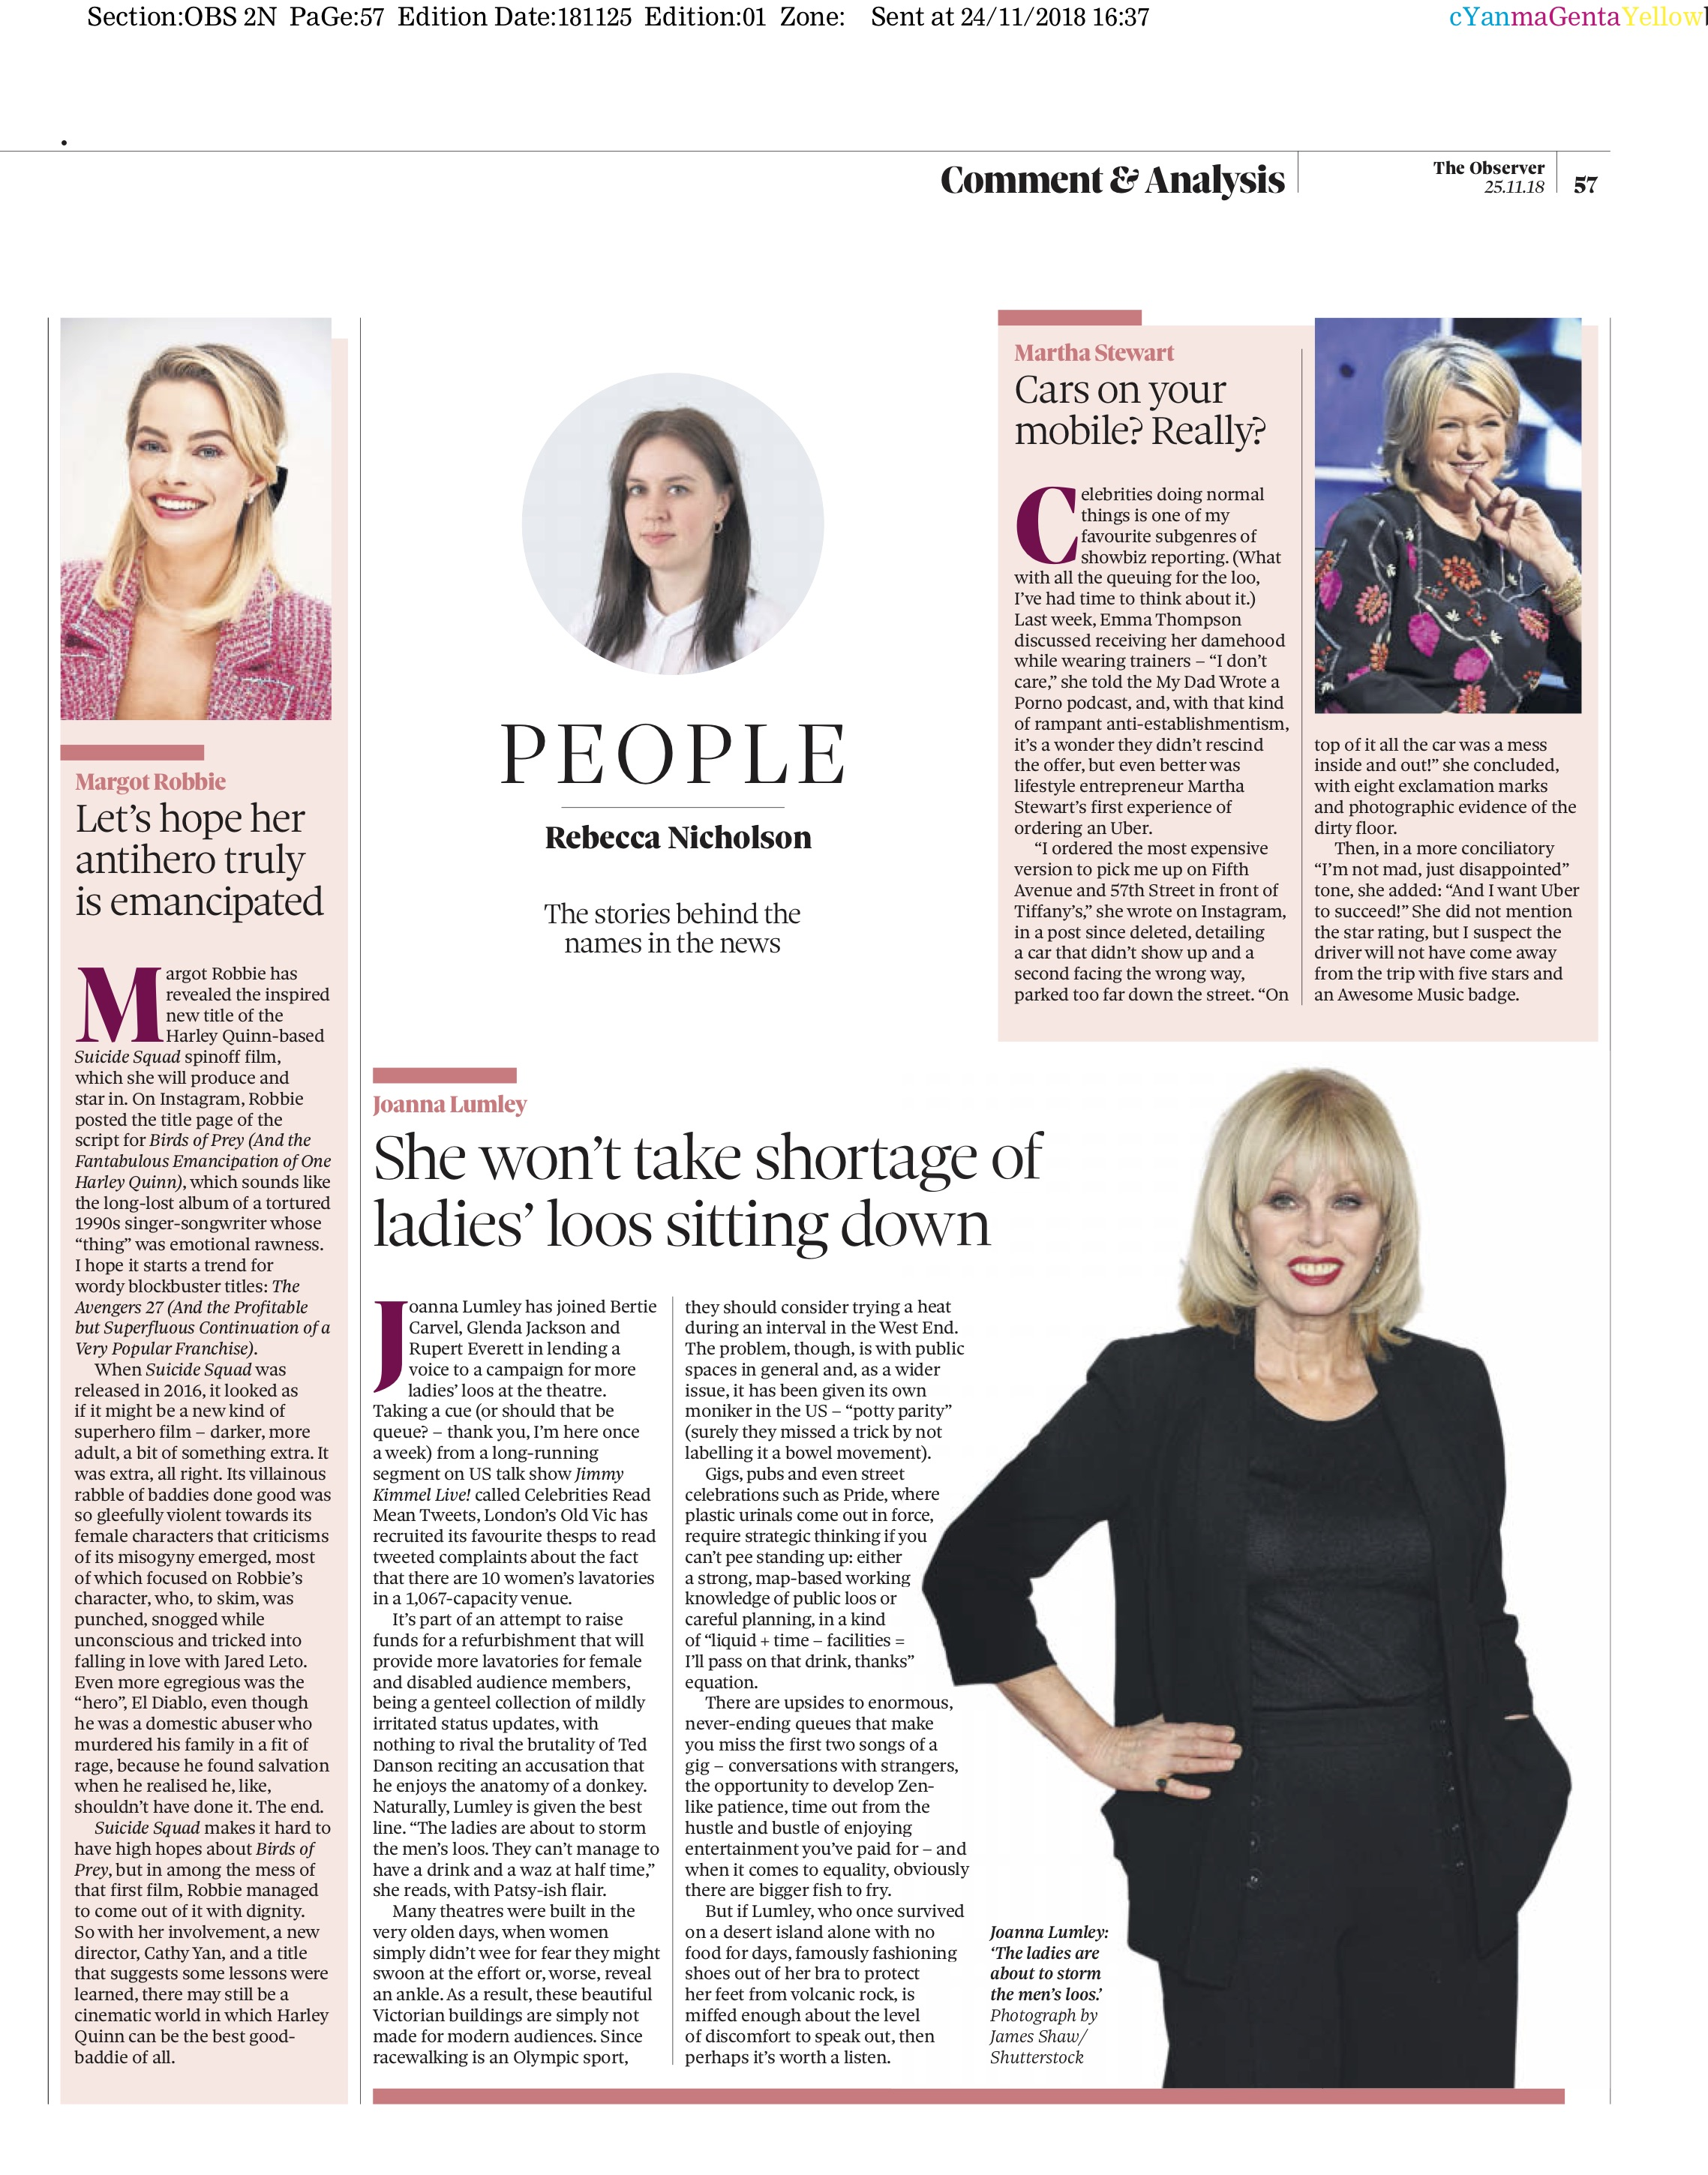 Joanna Lumley / The Observer